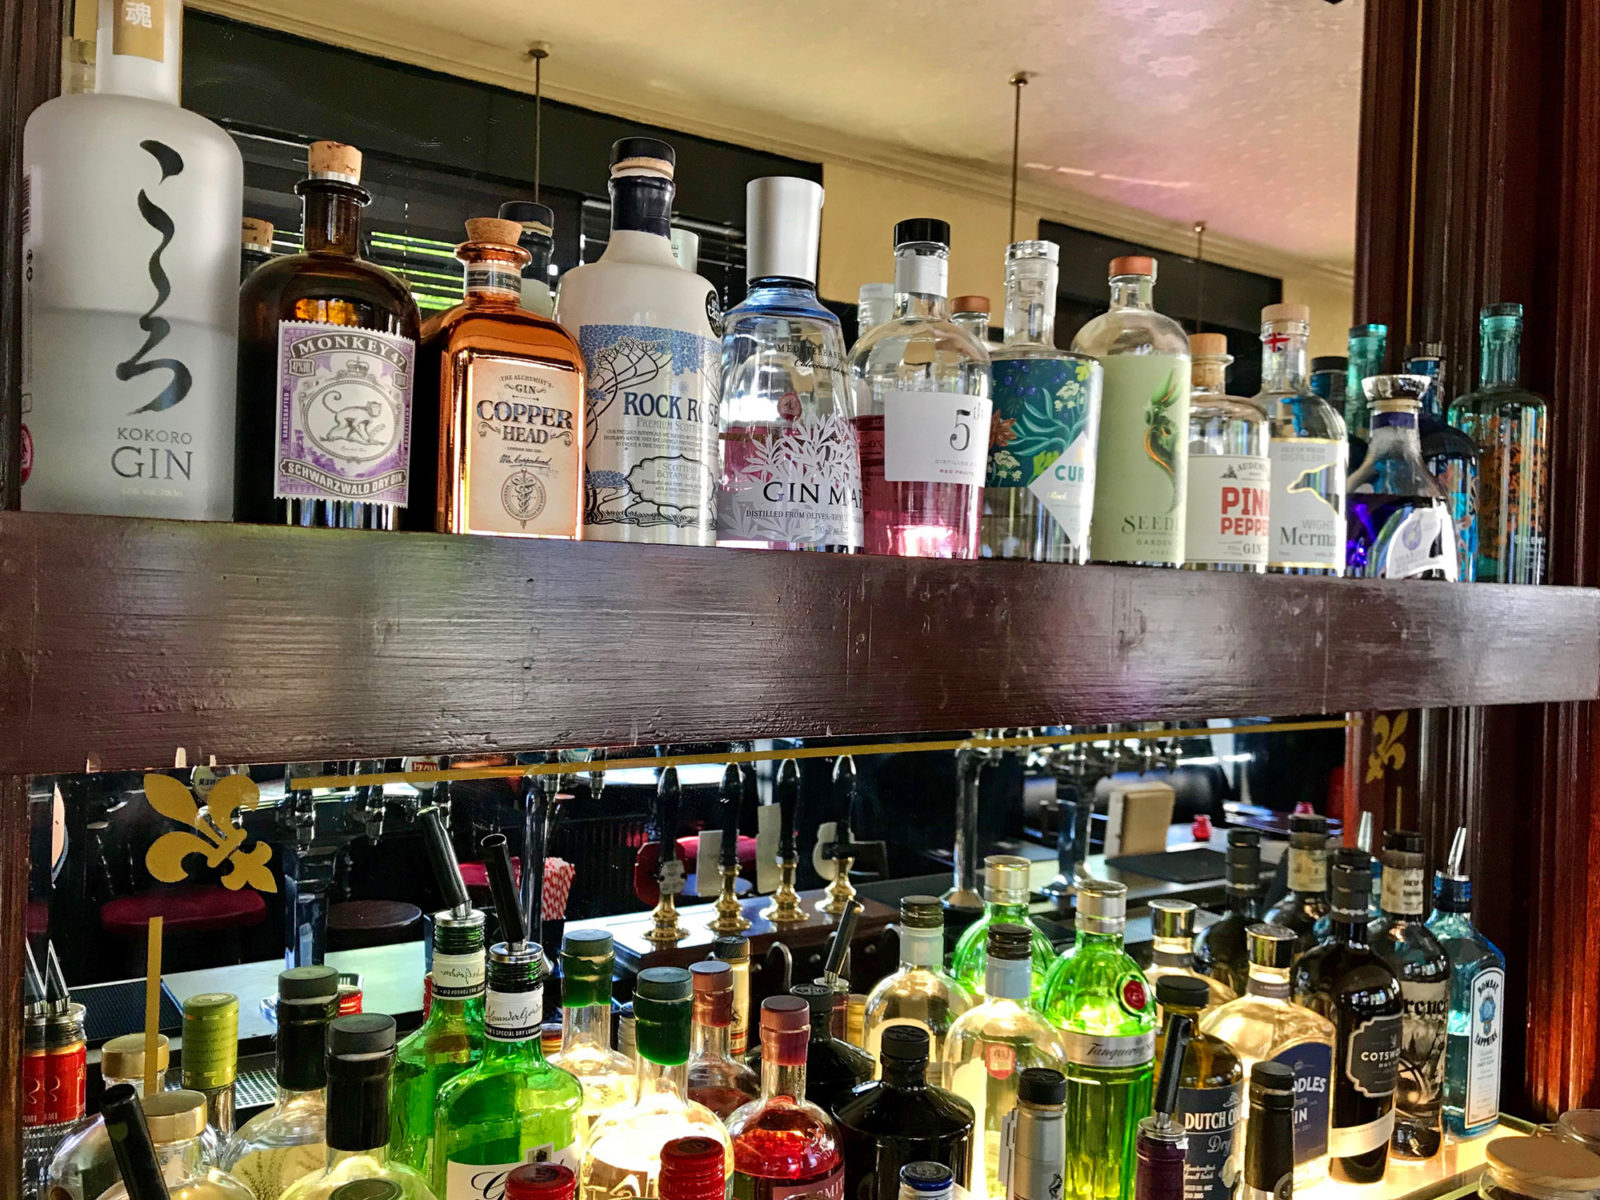 We take our gin collection seriously. Ask at the bar for recommendations.